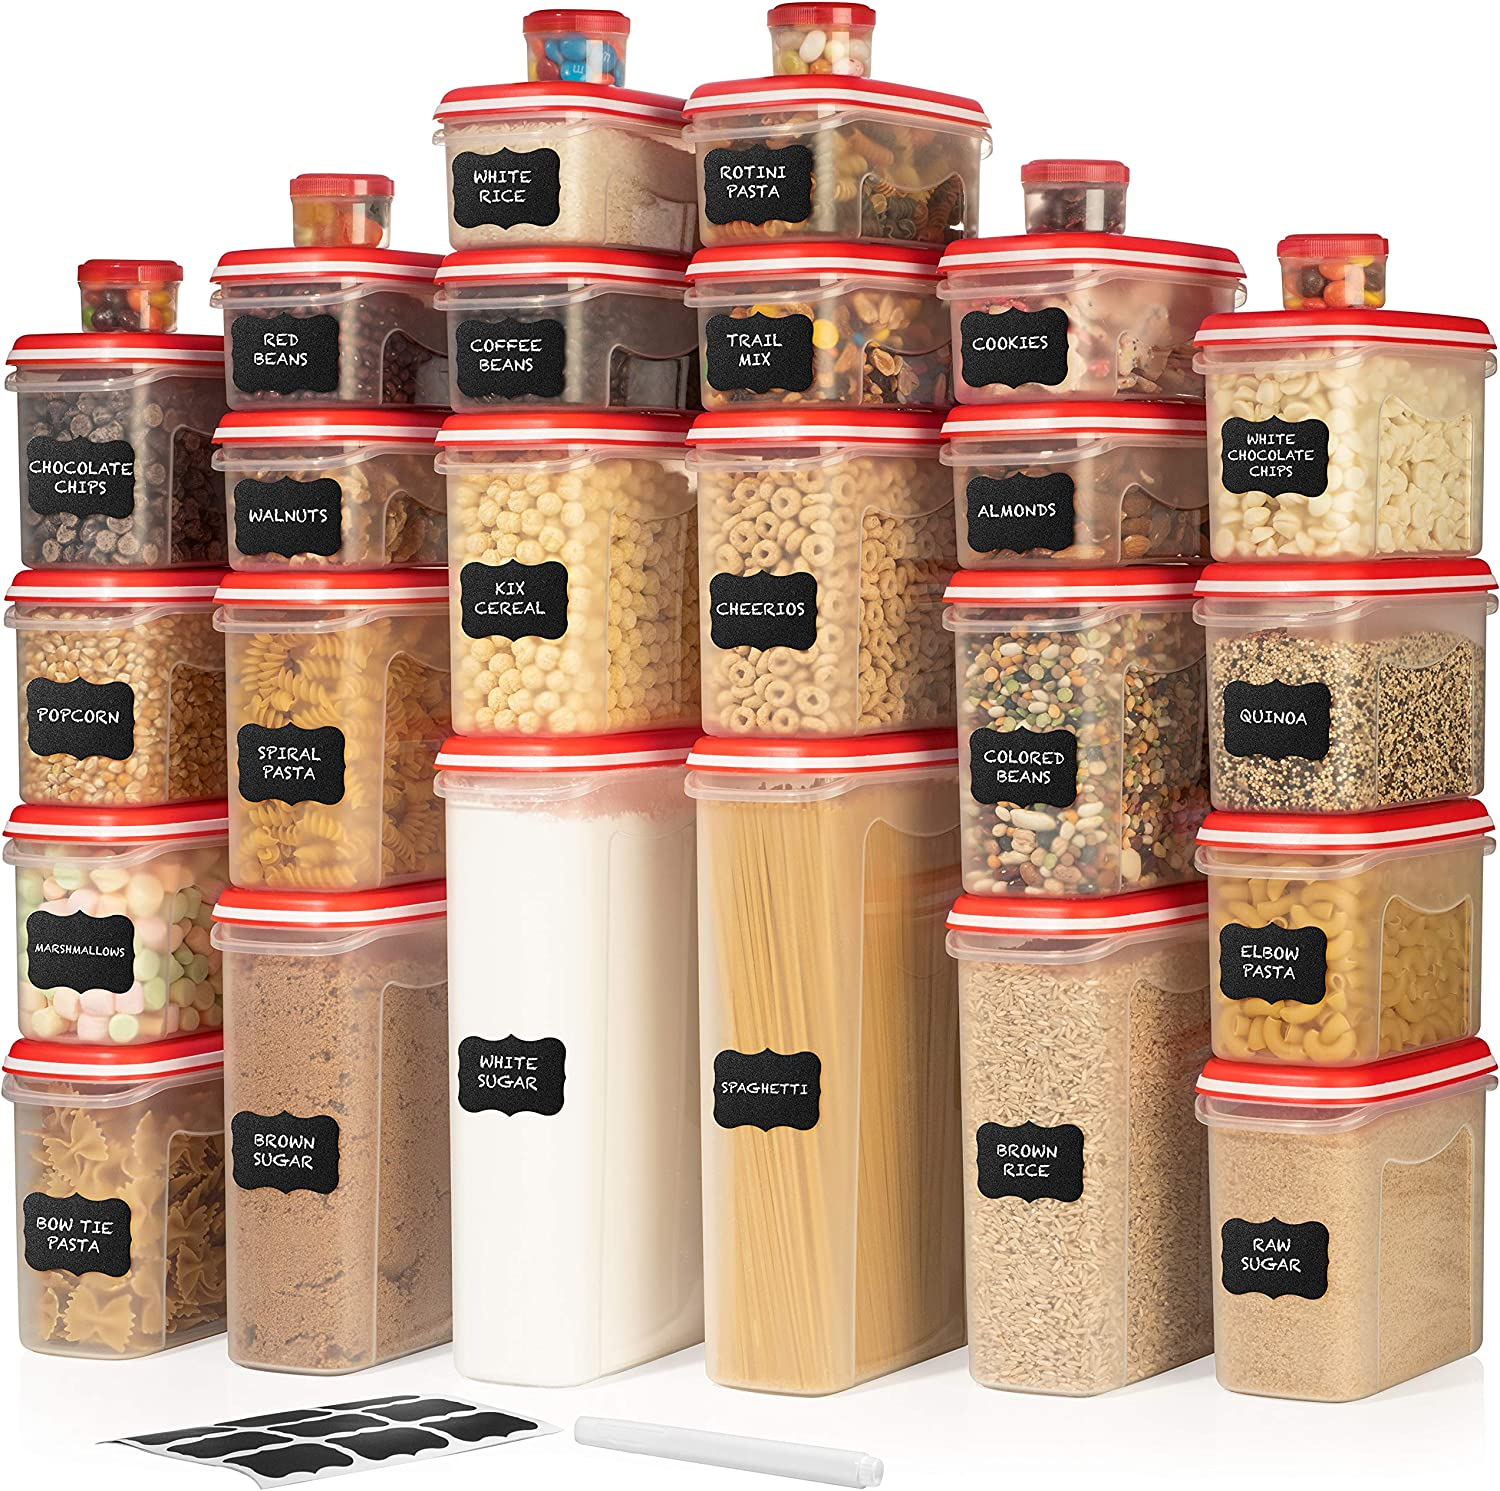 LARGEST Set of 60 Pc Airtight Food Storage Containers (30 Container Set) Airtight Plastic Dry Food Space Saver Organizer, One Lid Fits All - Stackable Freezer Refrigerator kitchen Storage Containers